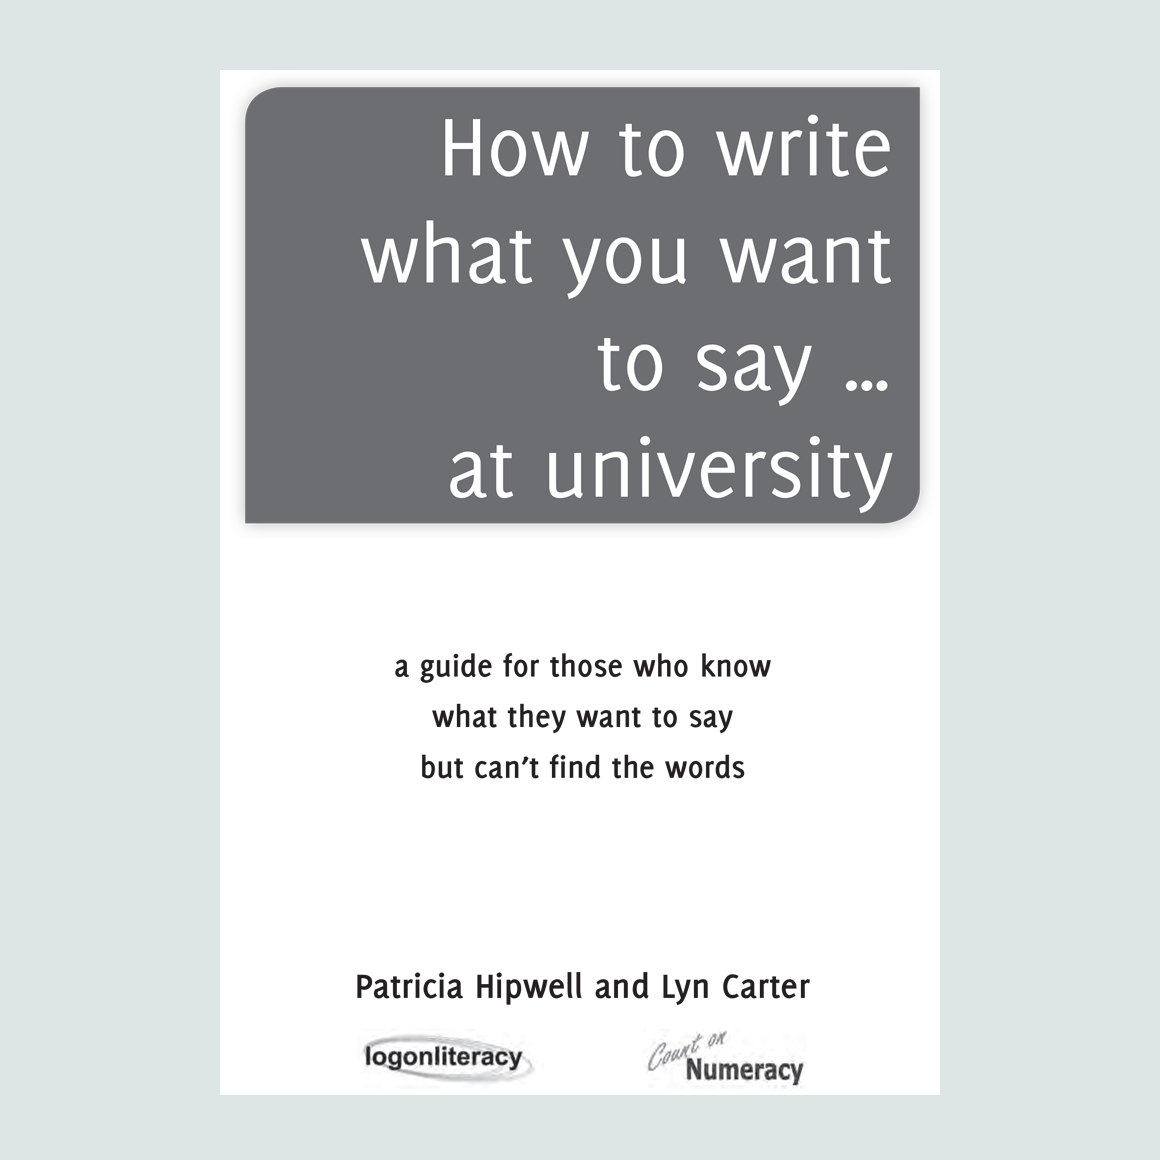 How to write what you want to say... at university